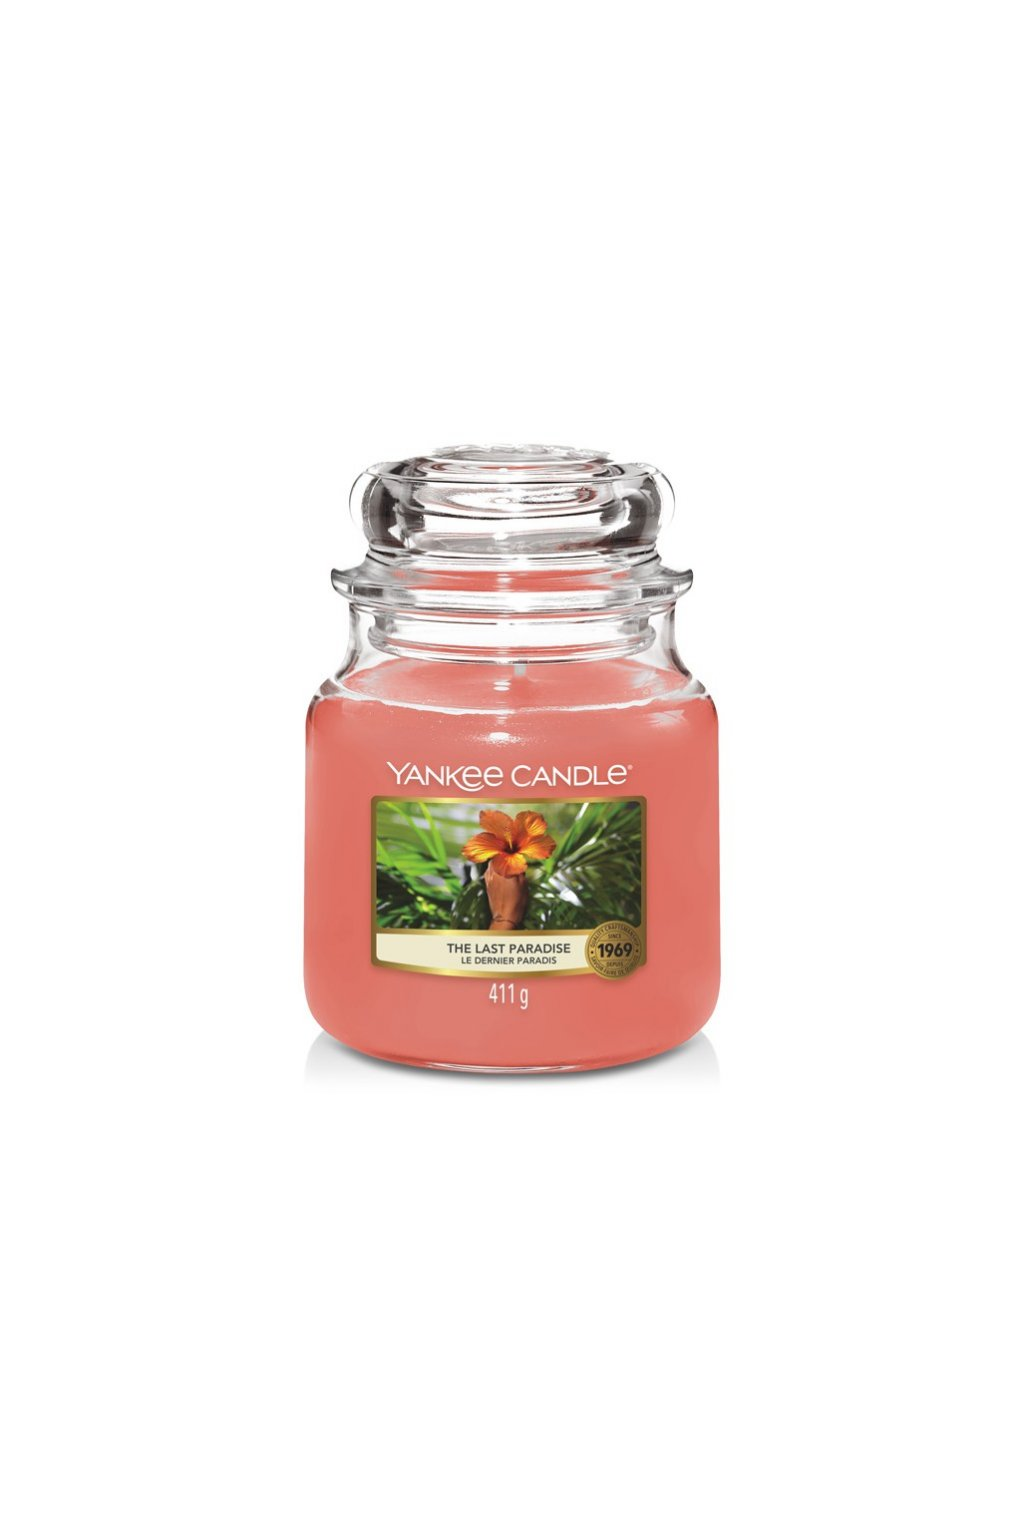 Yankee Candle The Last Paradise 411g